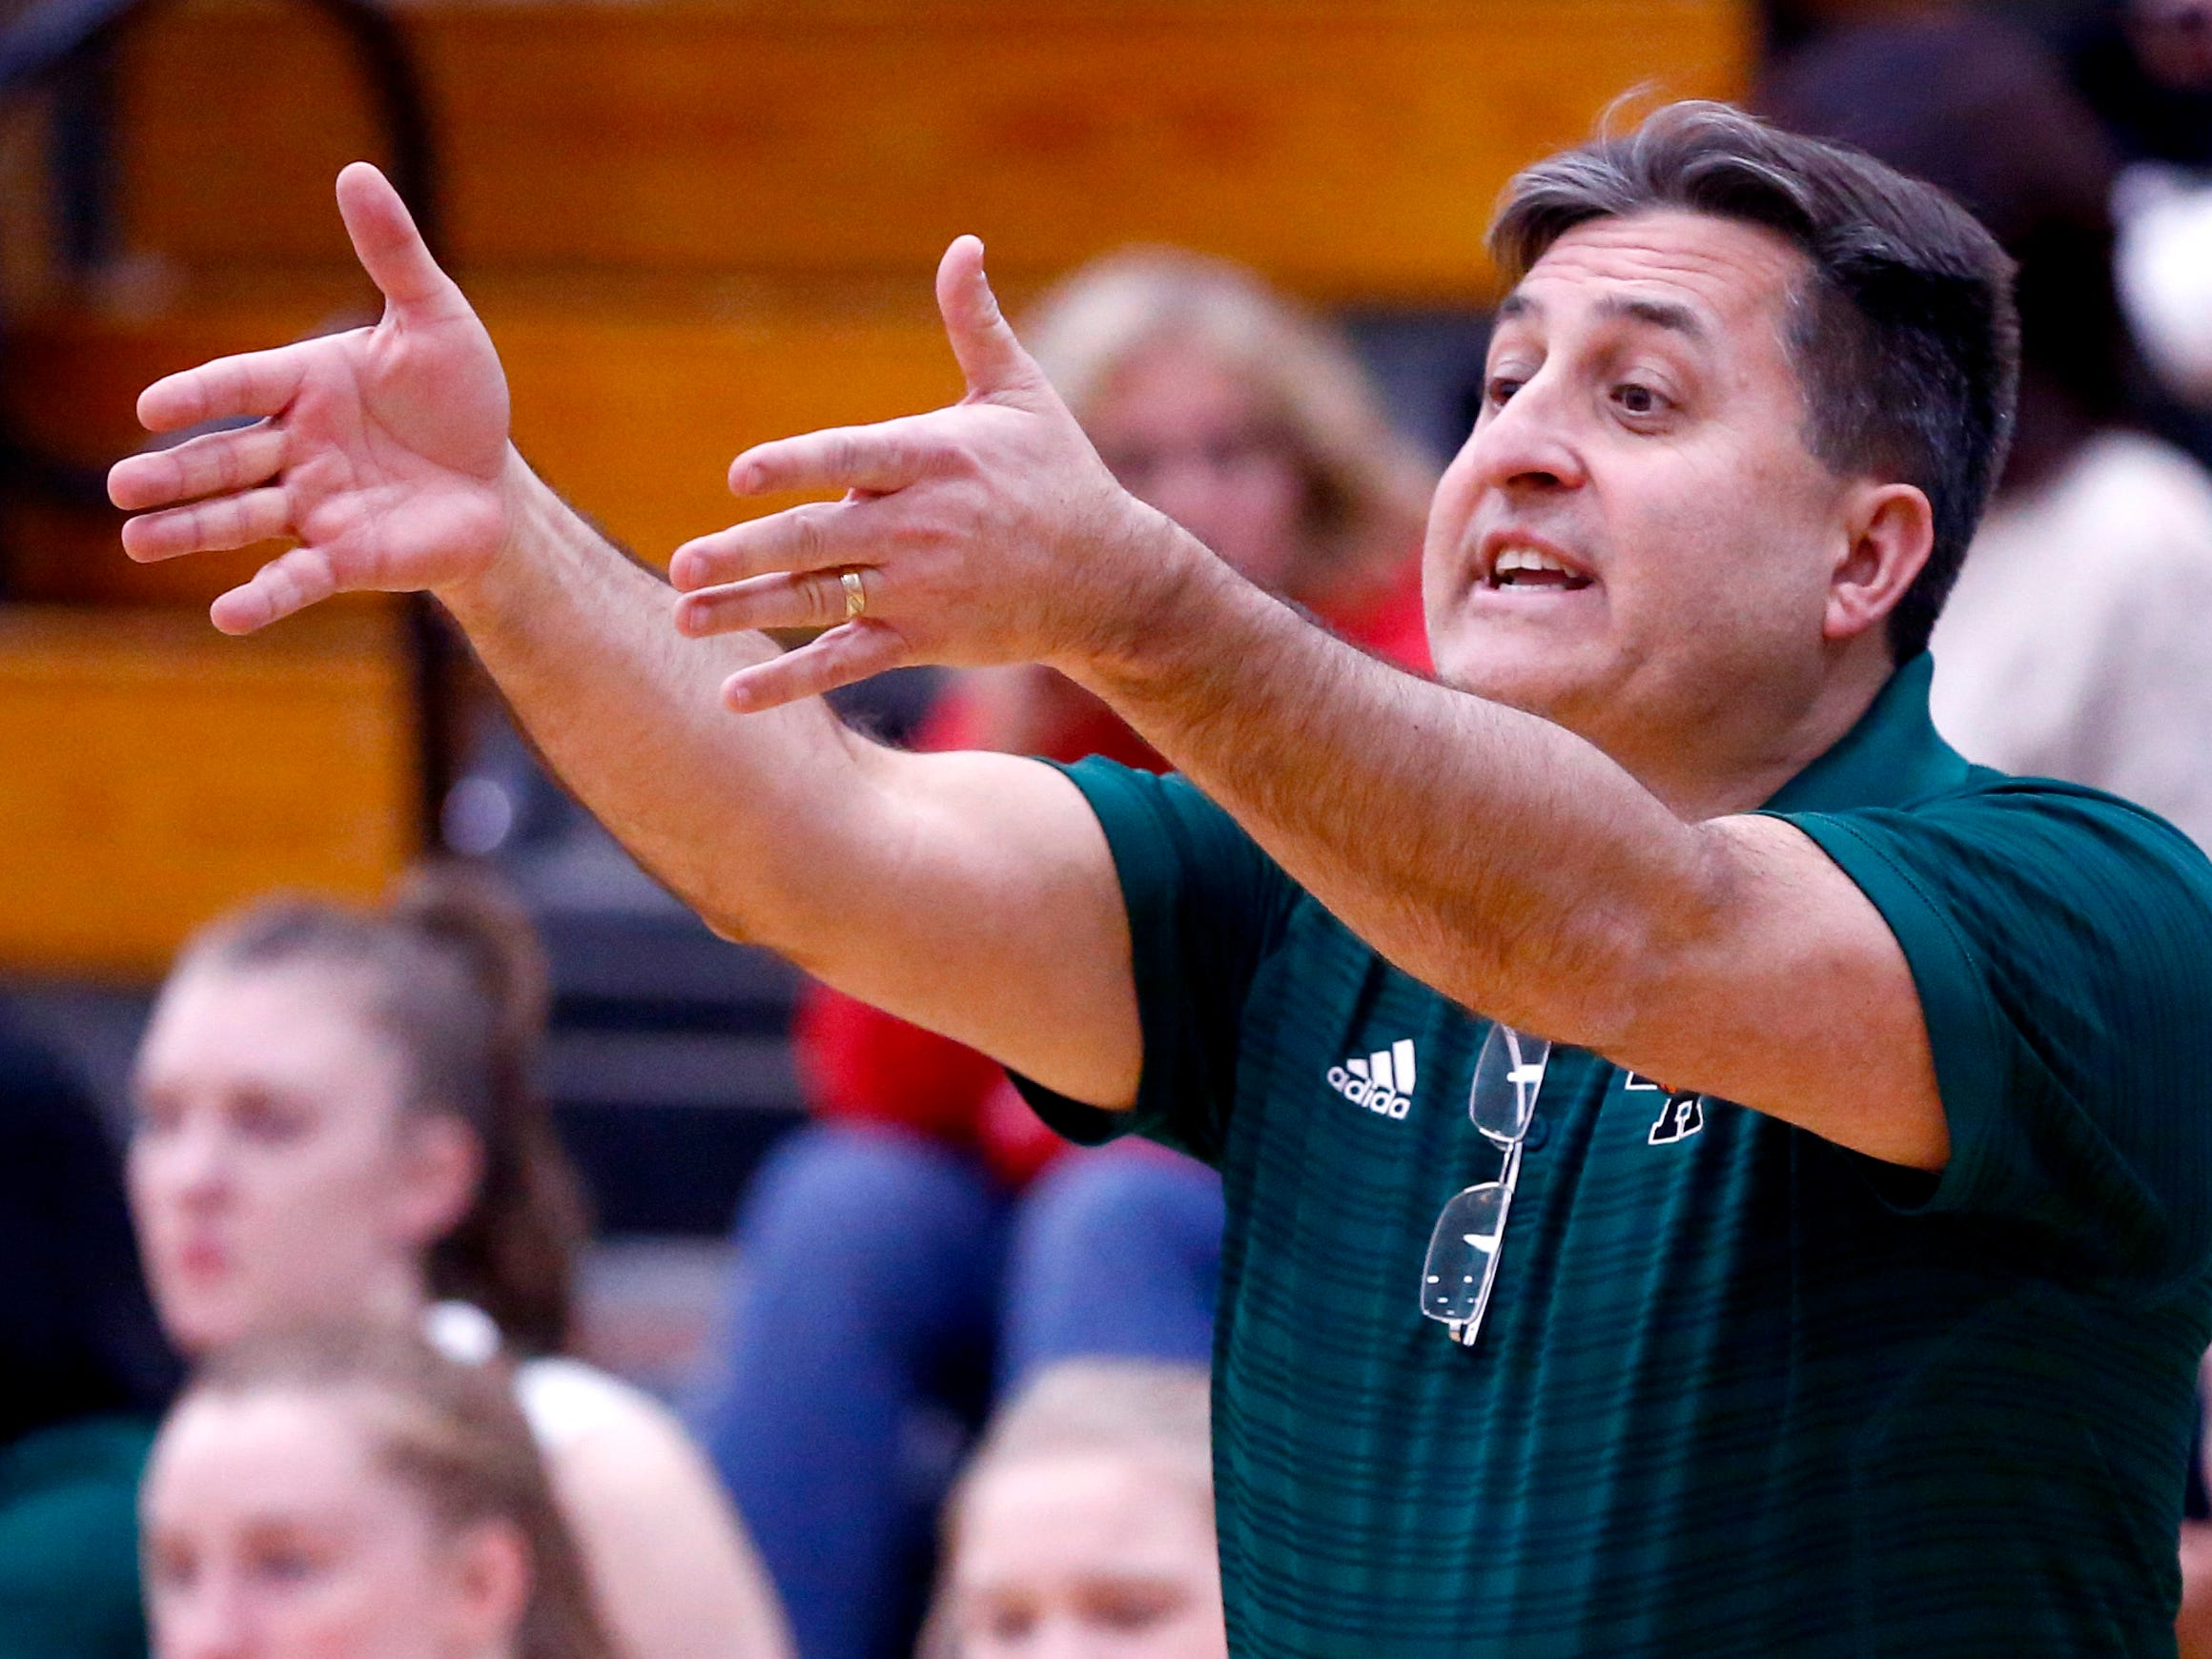 West Allis Hale Girls Basketball Coach George Sotiros at Hale on Nov. 13